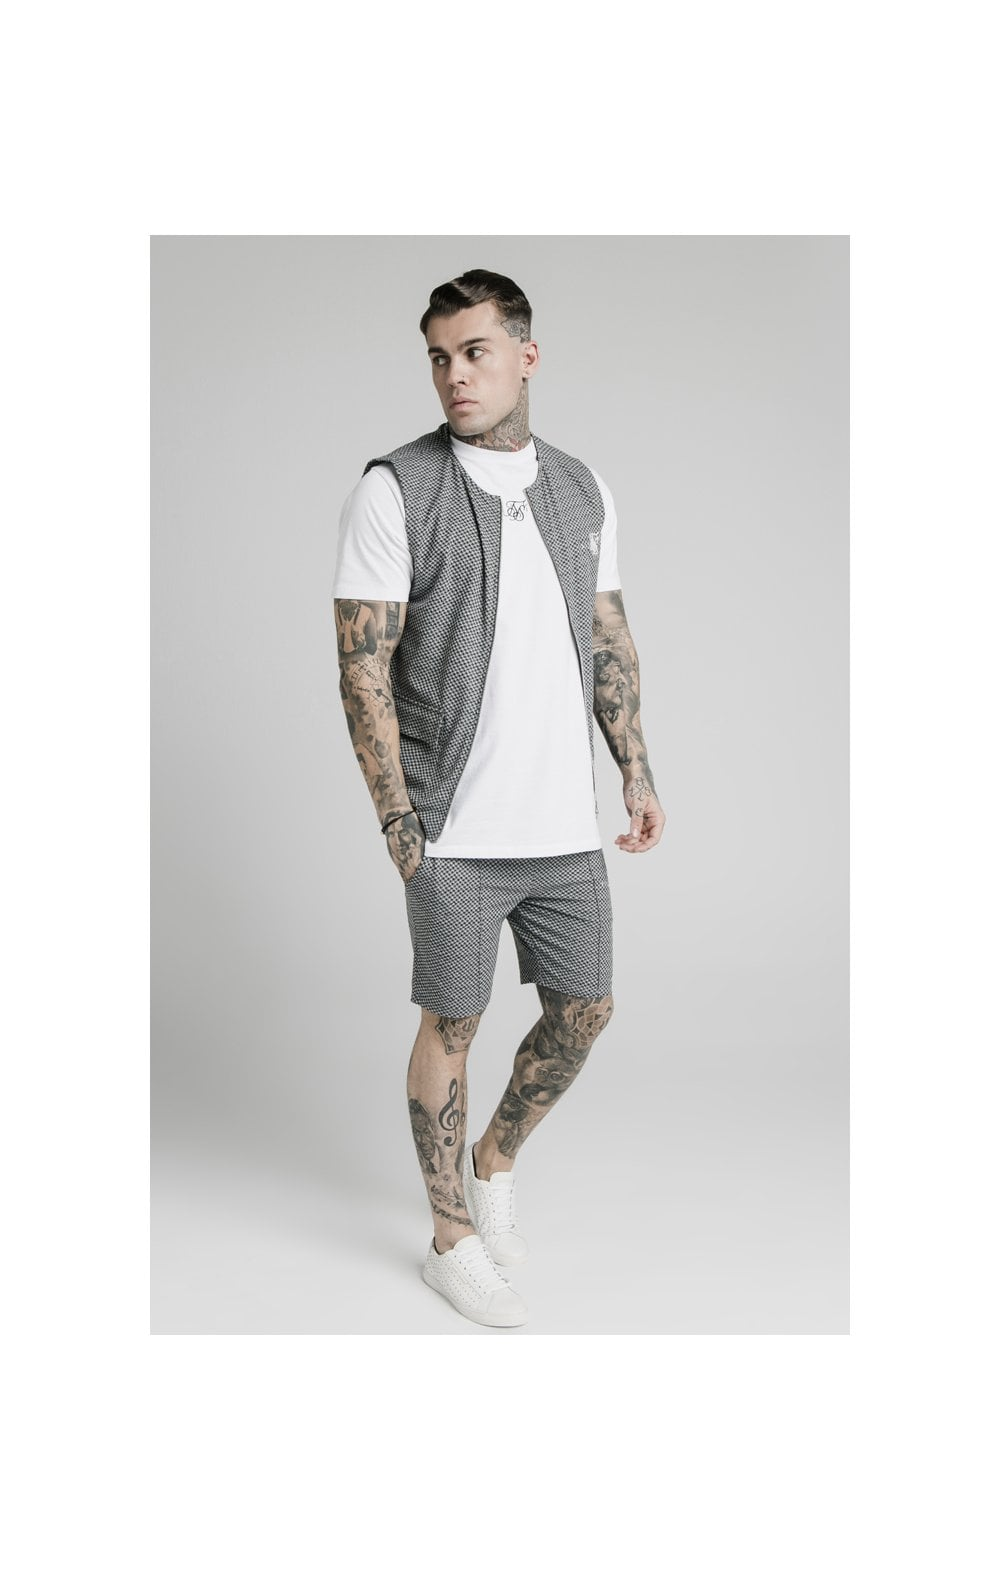 SikSilk Smart Wear Vest - Black & White Dogtooth (2)